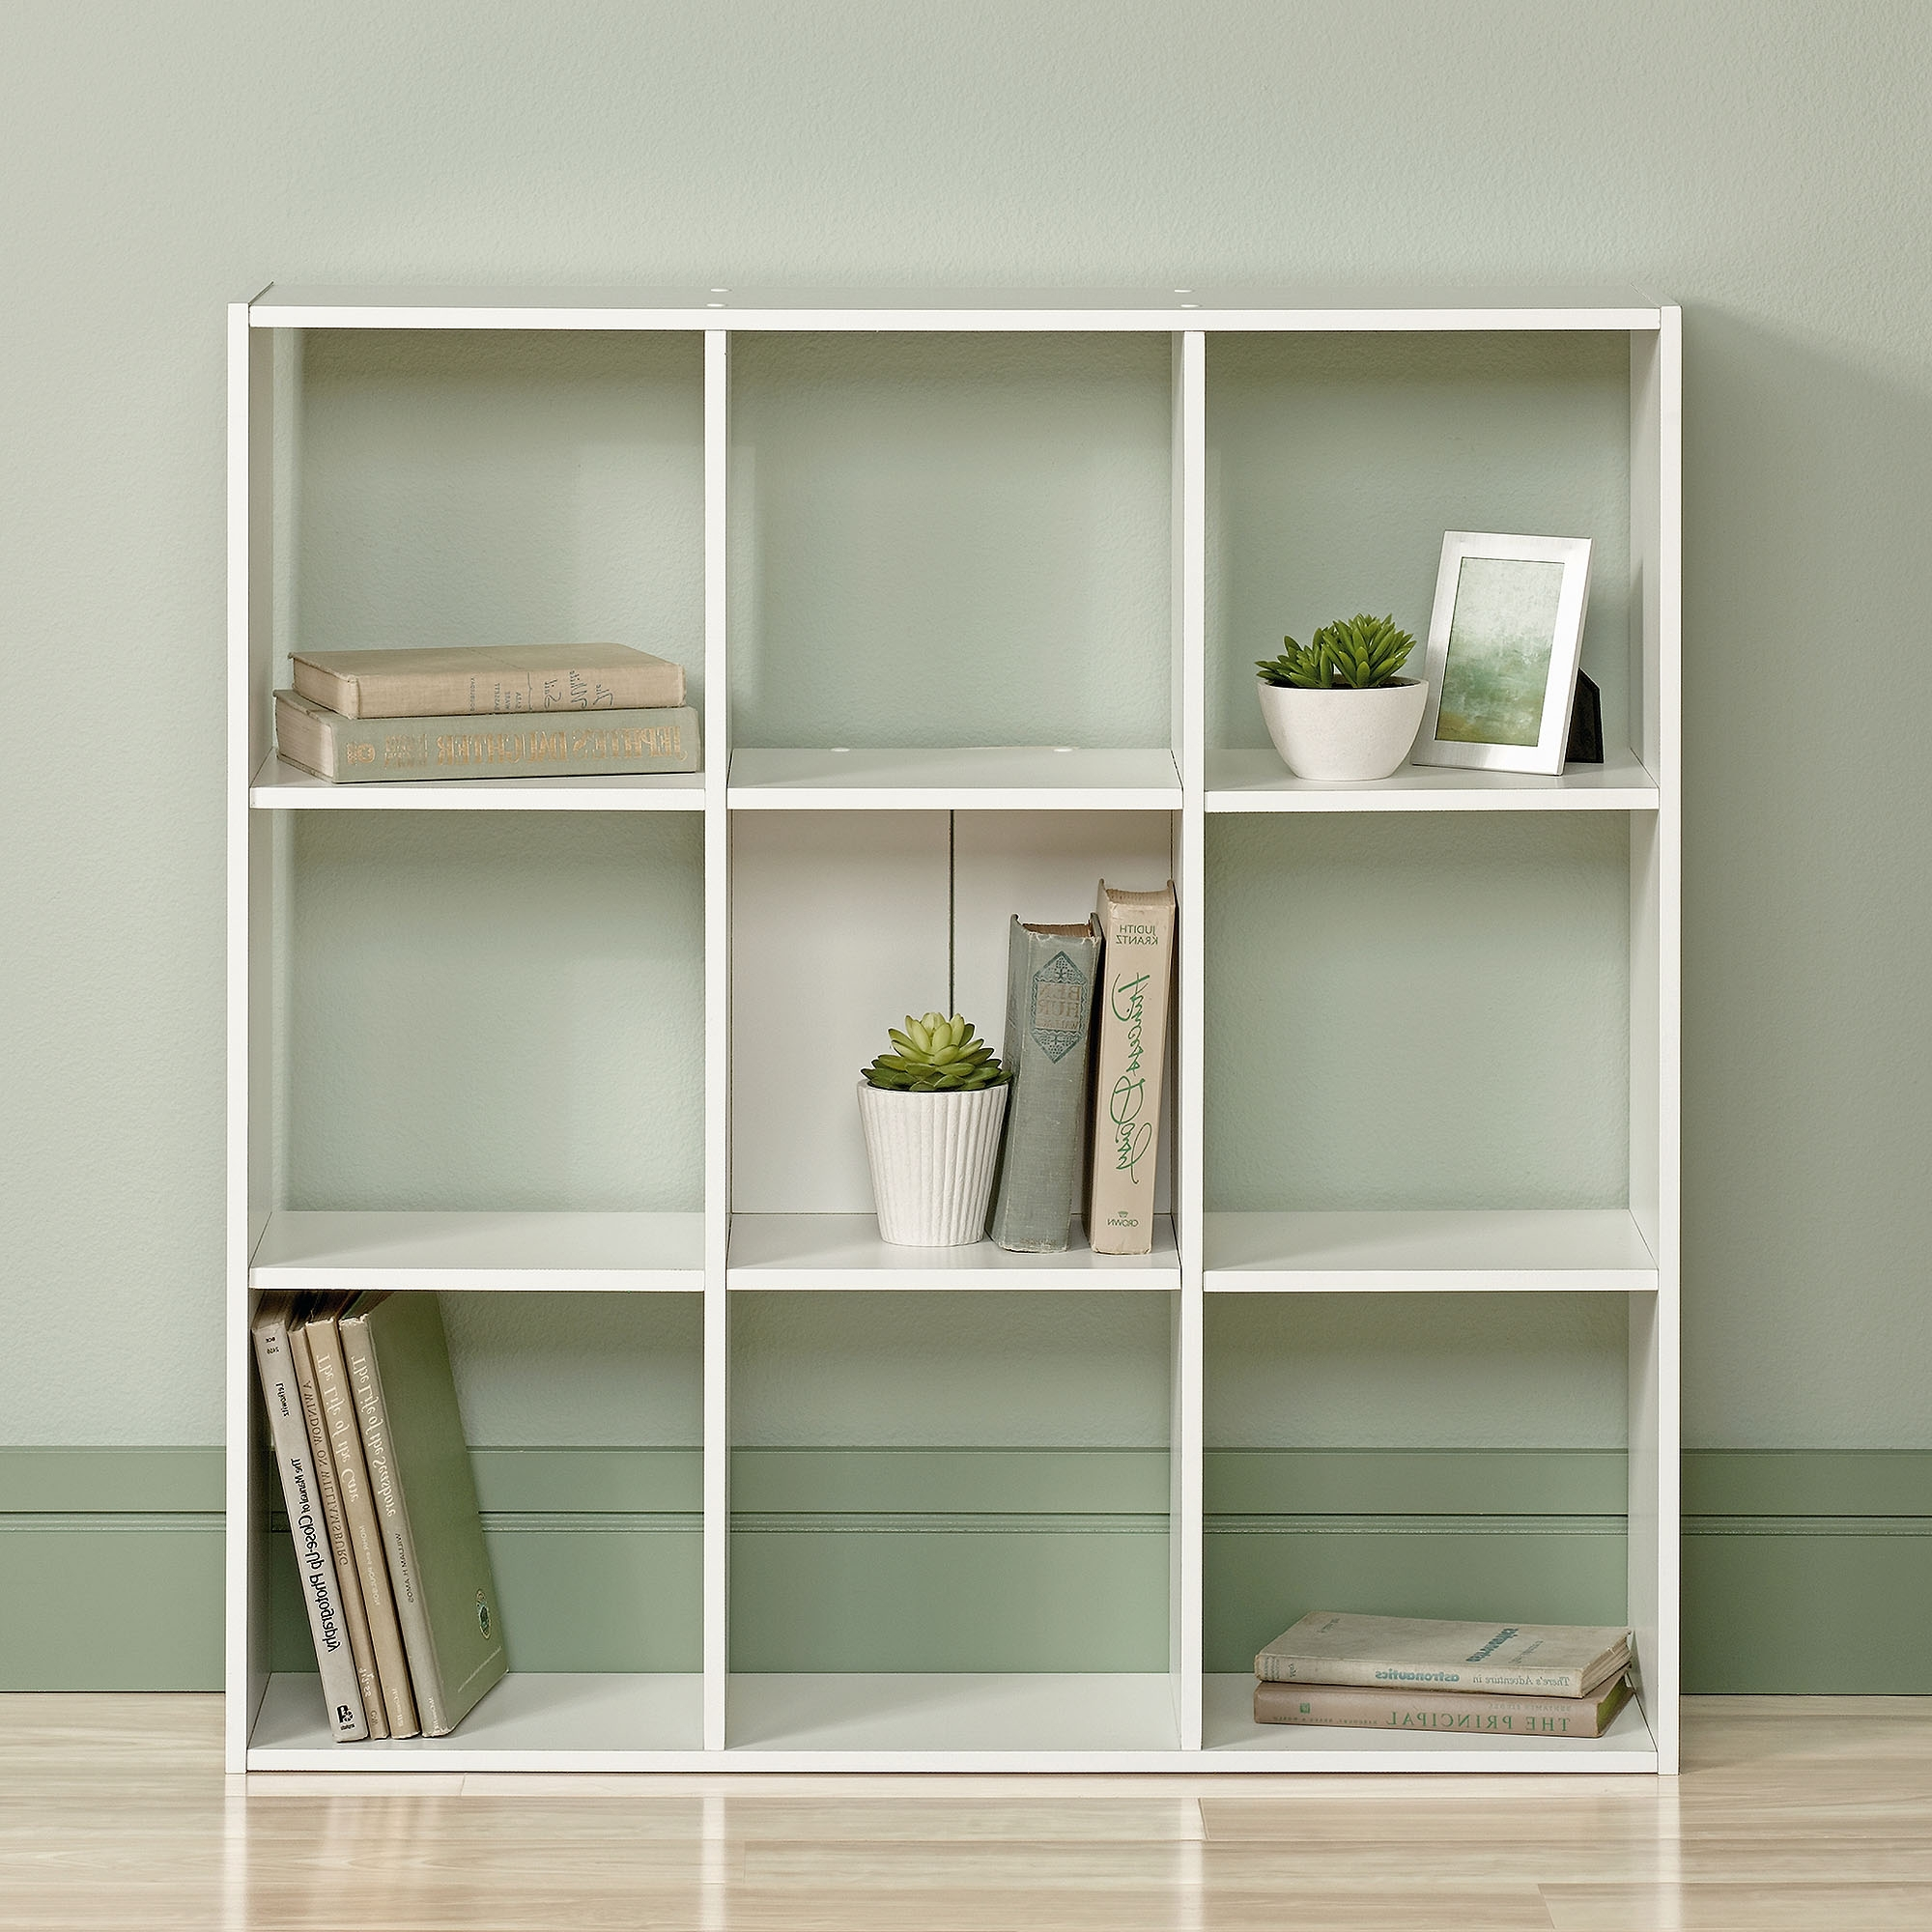 Sauder Organizer Bookcase, Soft White – Walmart Inside Current White Walmart Bookcases (View 9 of 15)